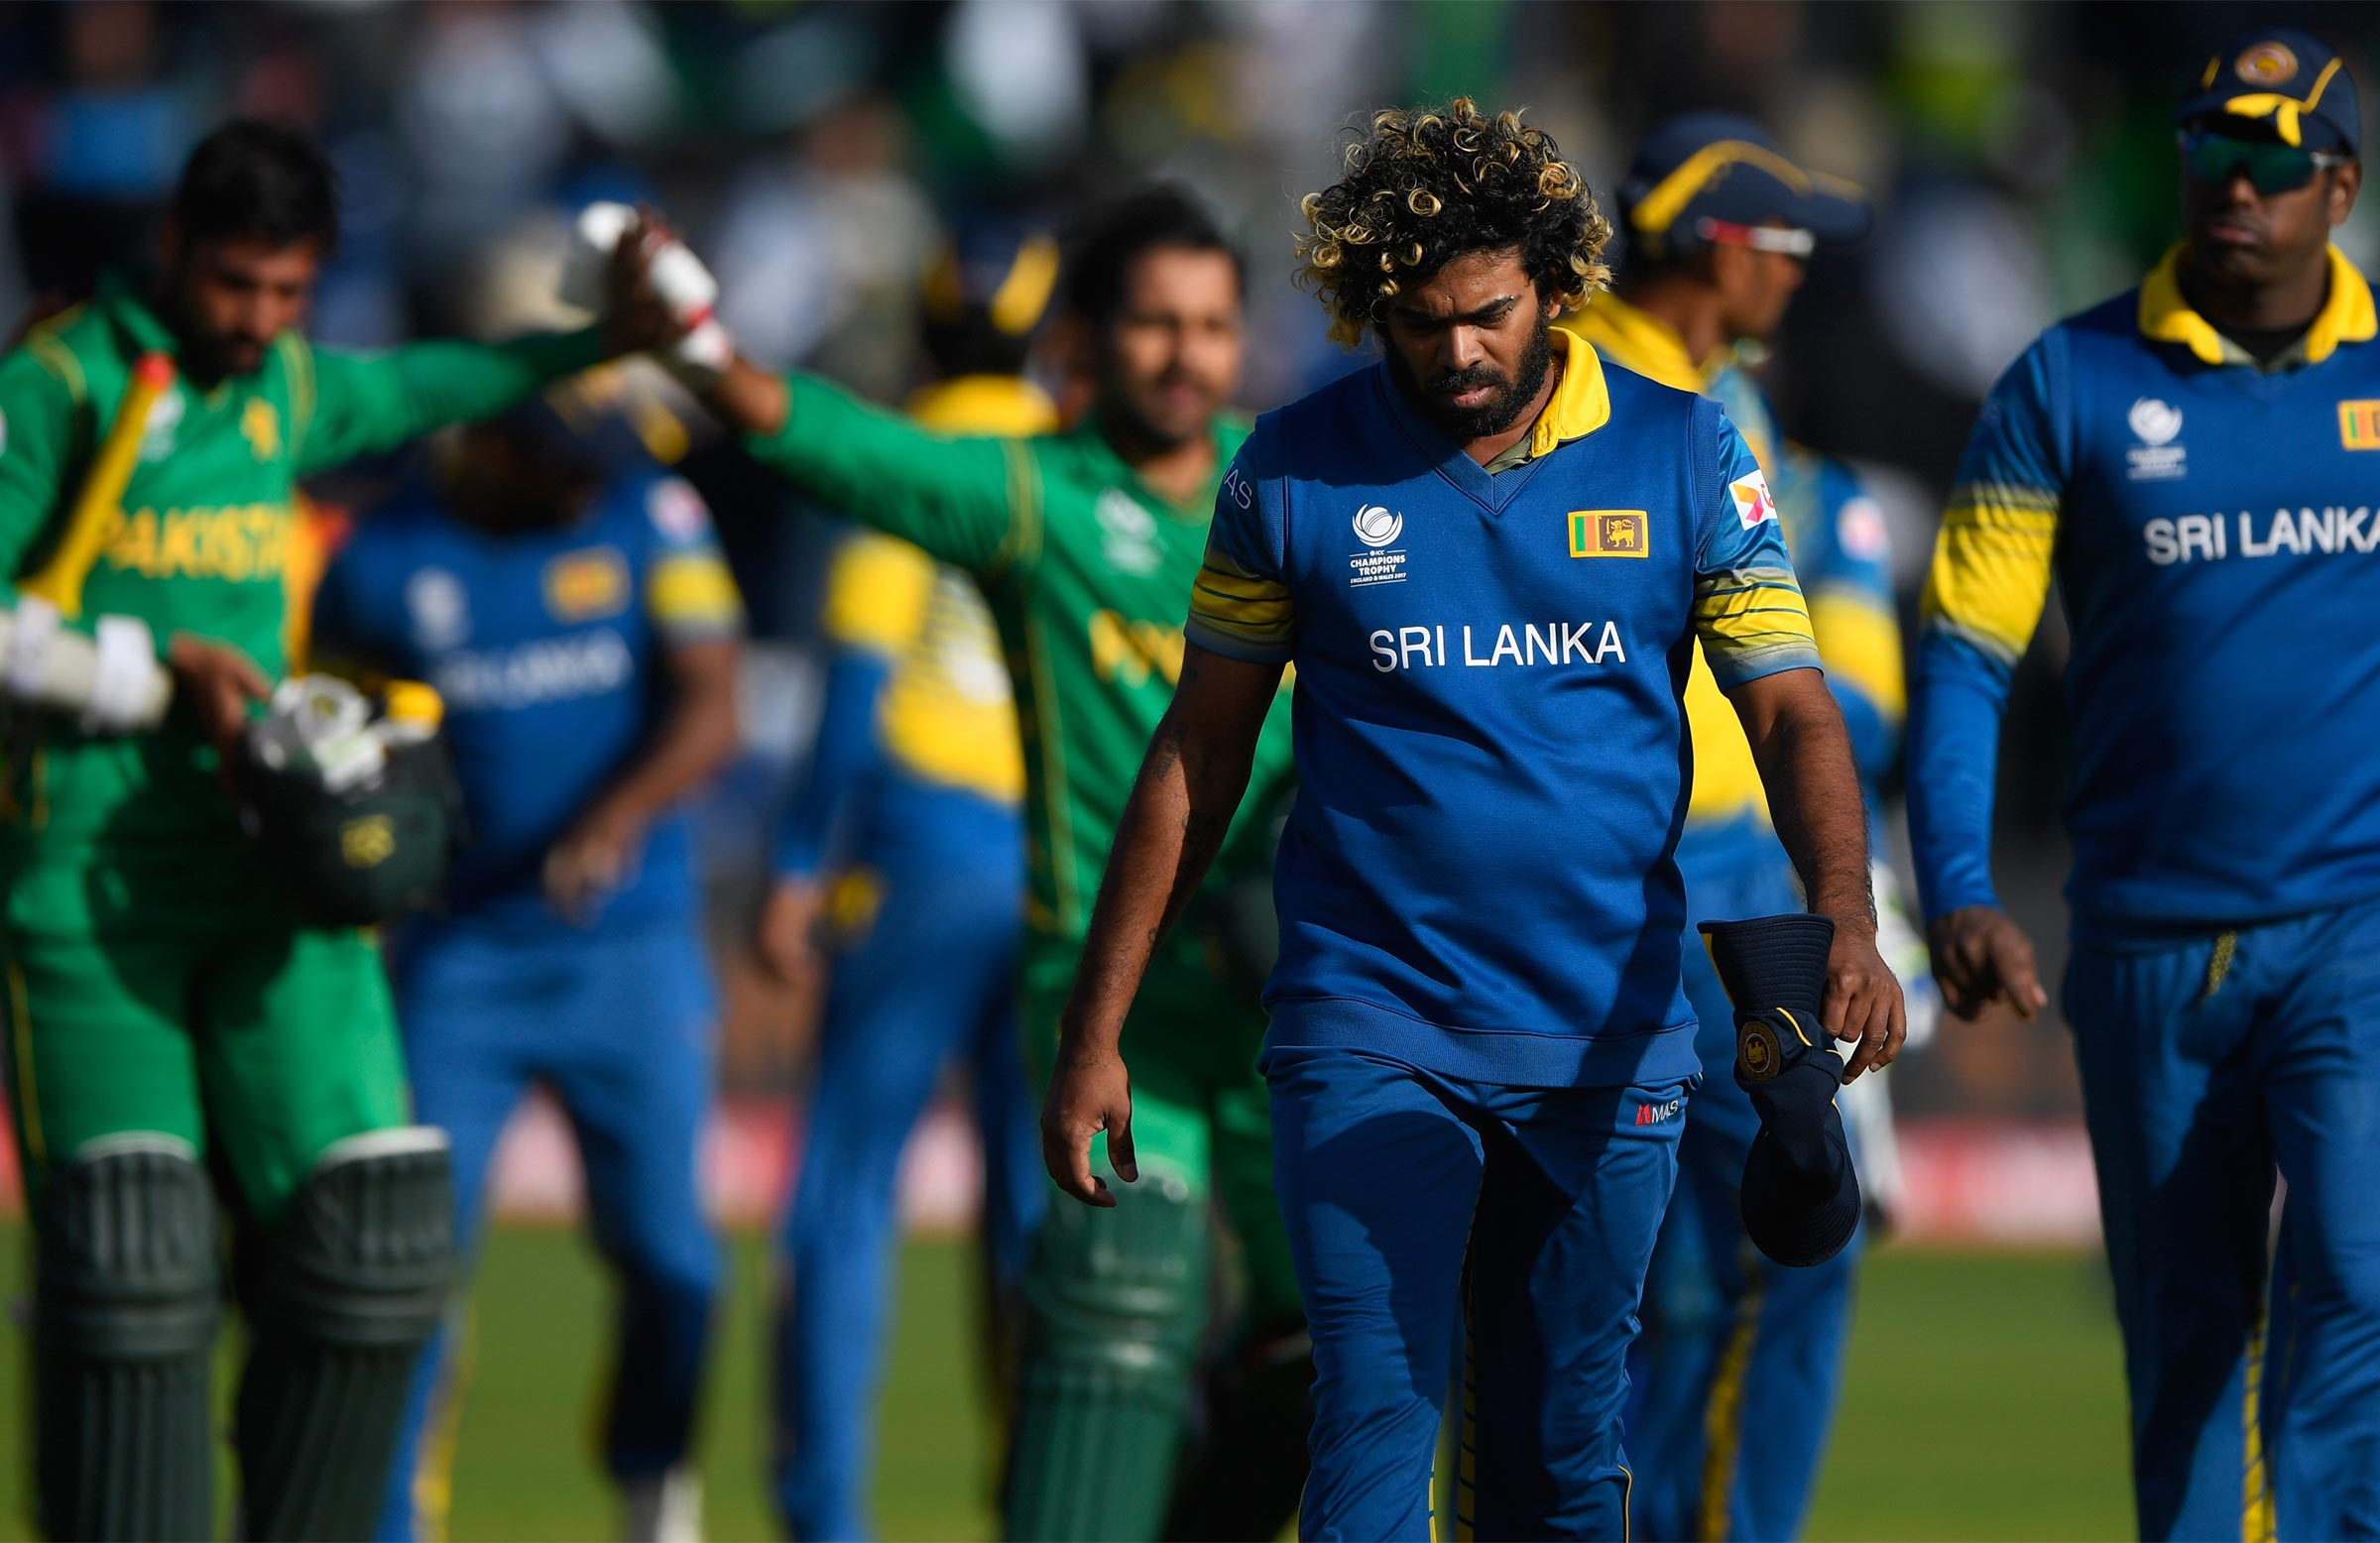 Malinga has been punished but won't miss any matches // Getty